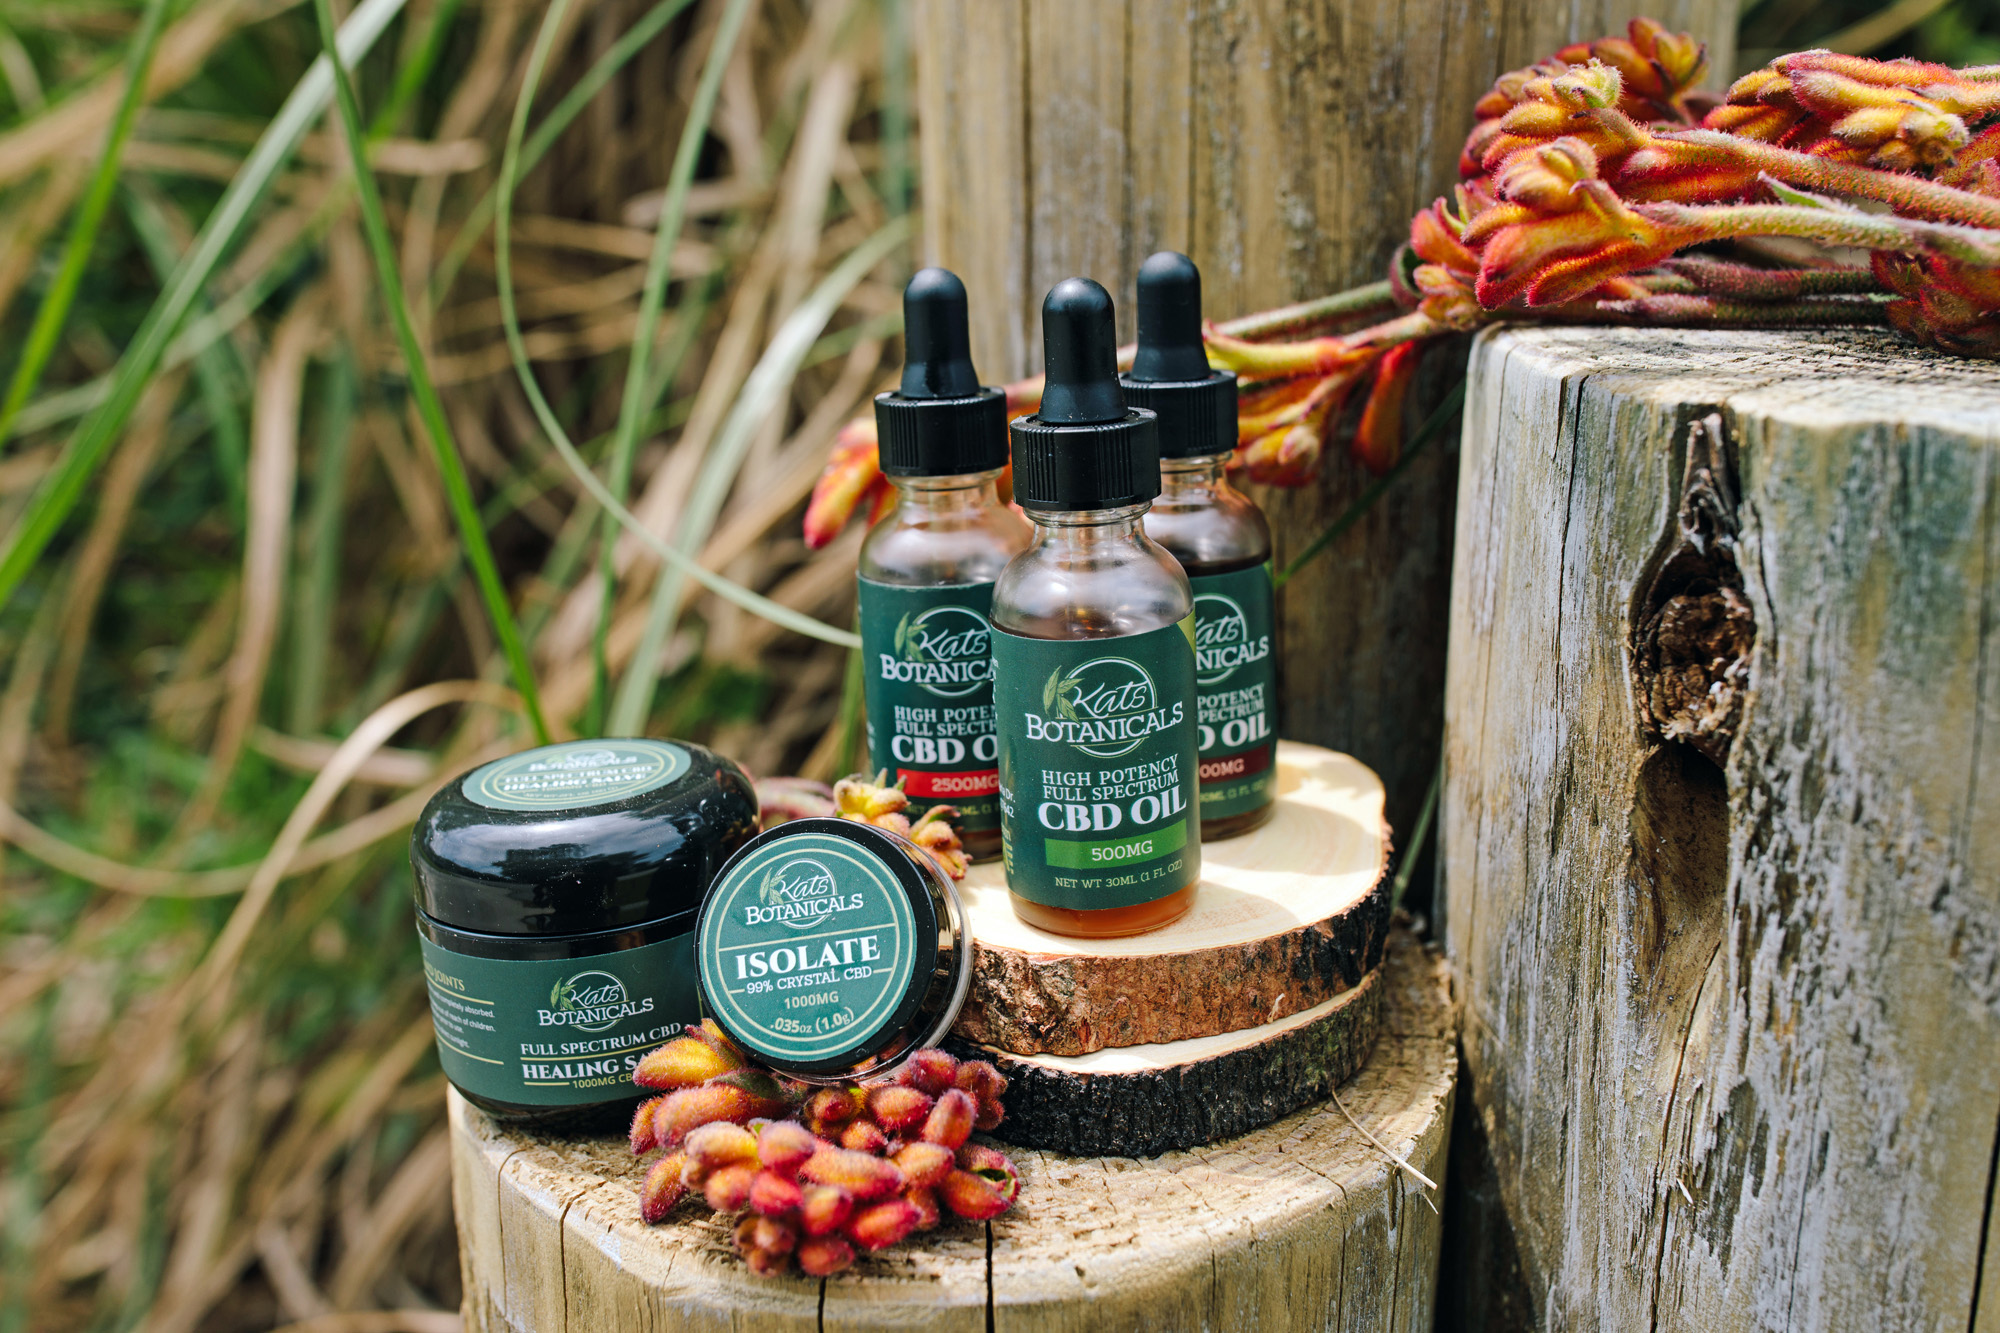 Kats Botanicals provides excellent quality CBD Oil for sale including CBD Hemp Oil, CBD Gummies, CBD Salve, and CBD Isolate Powder.